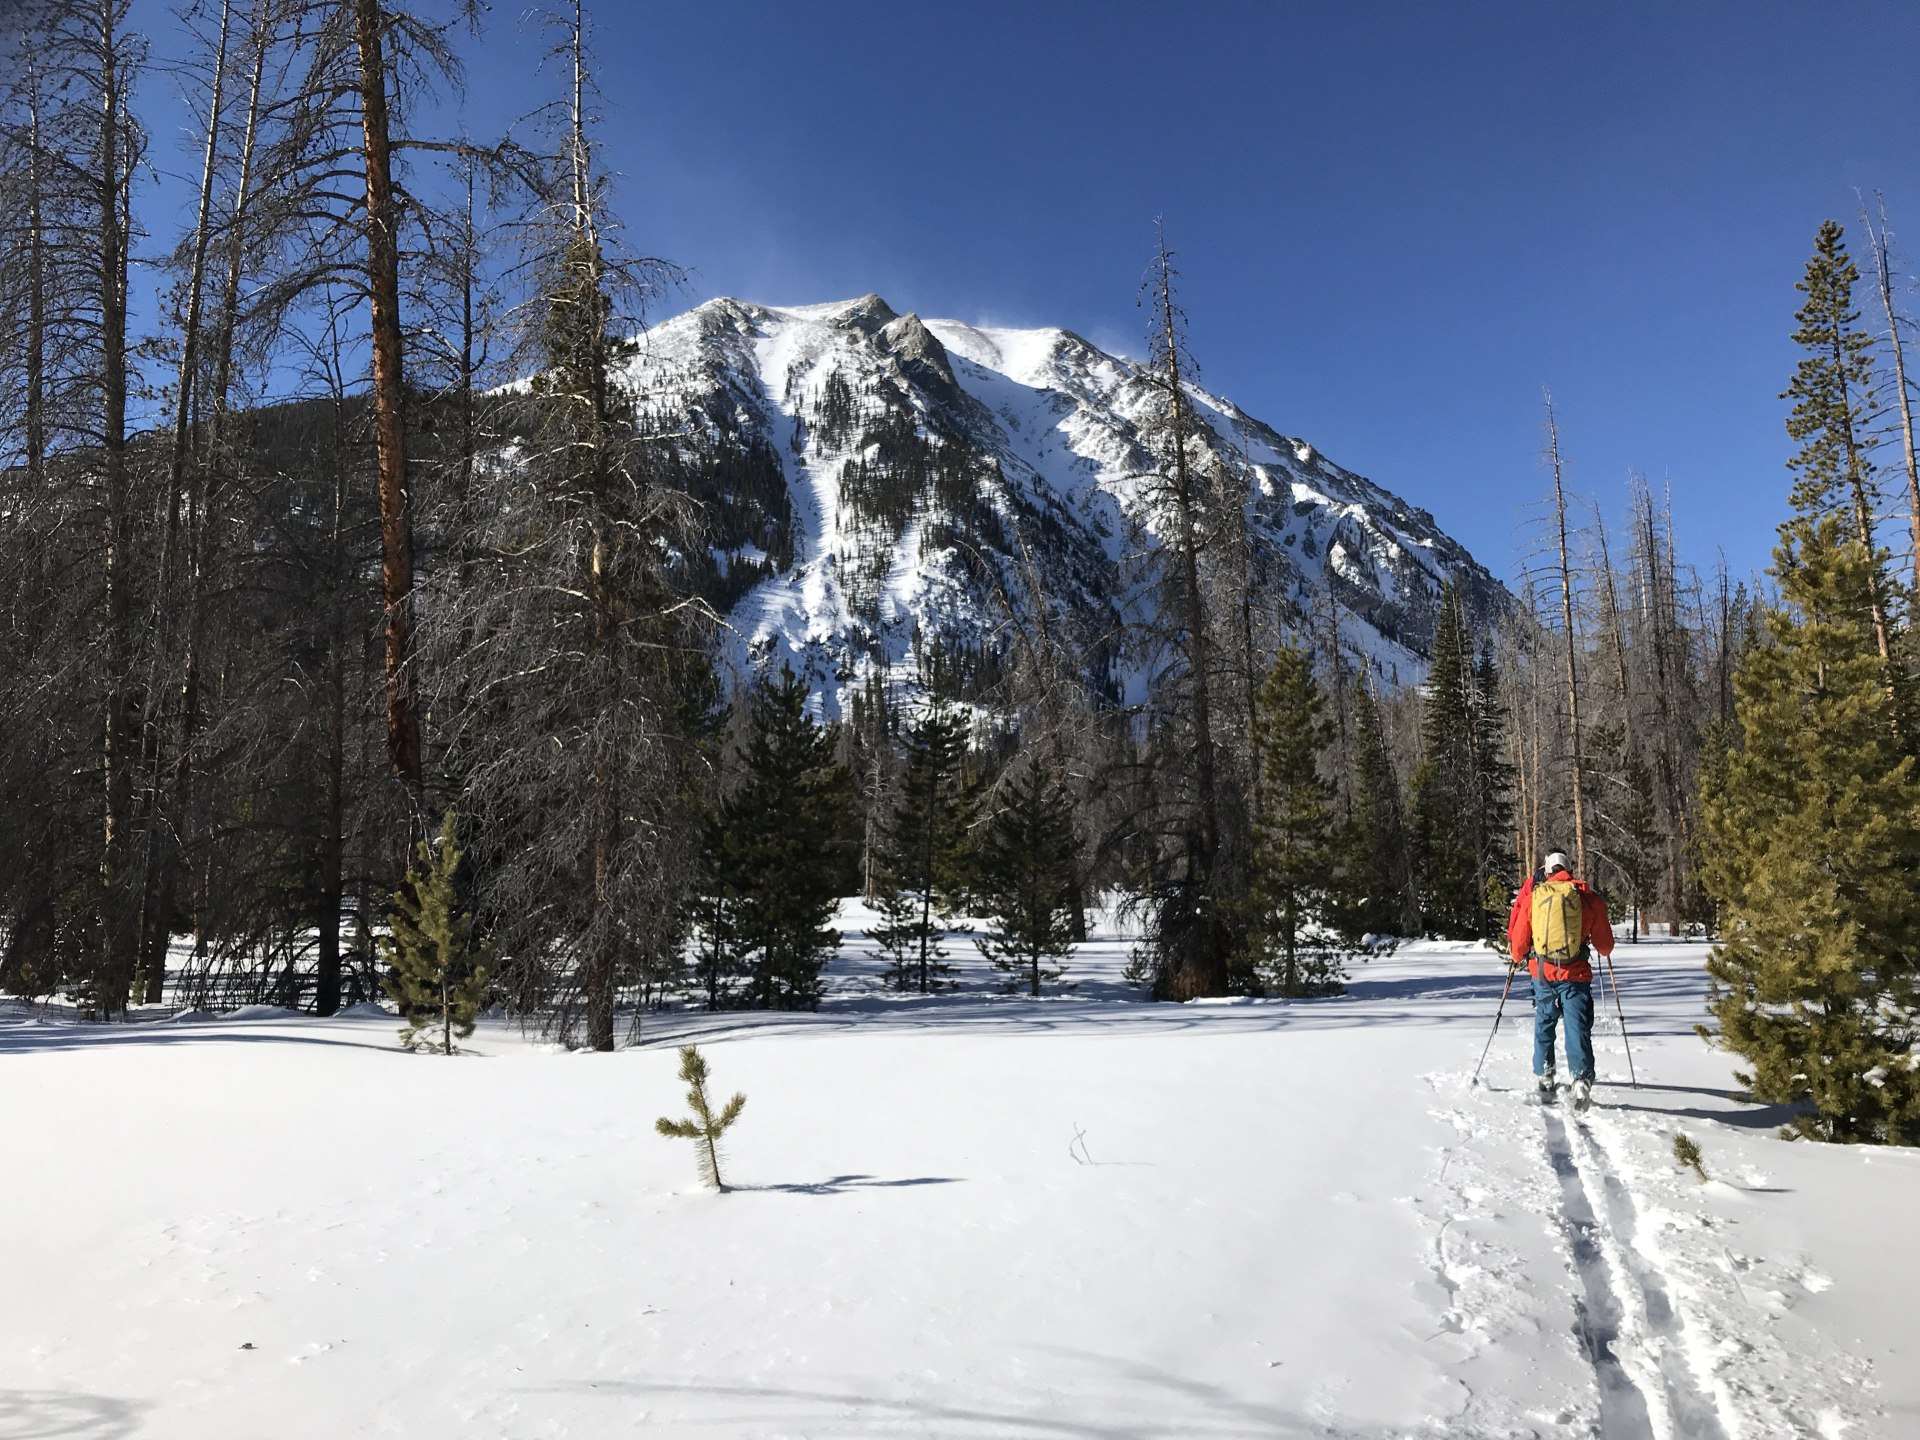 Buffalo Mountain Loop on Skis